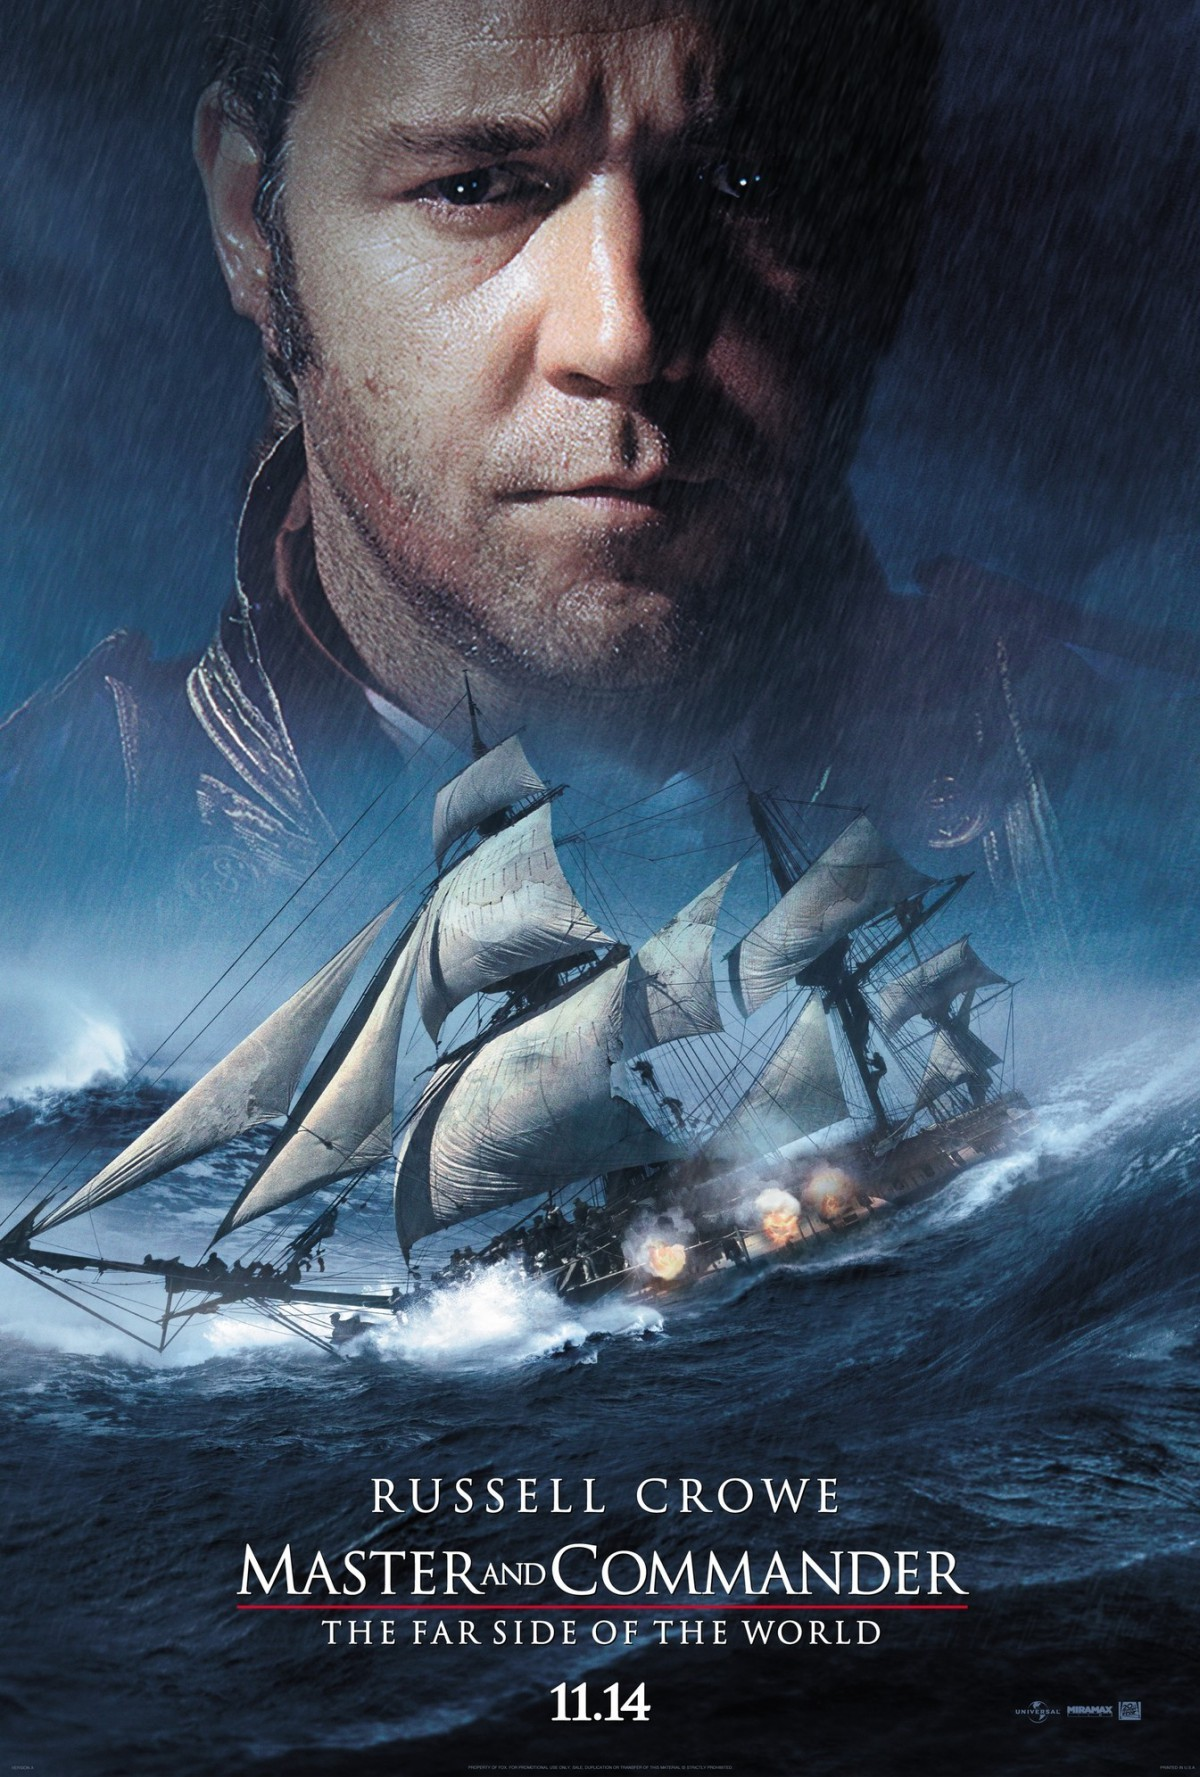 30. Master and Commander - The Far Side of the World (2003)